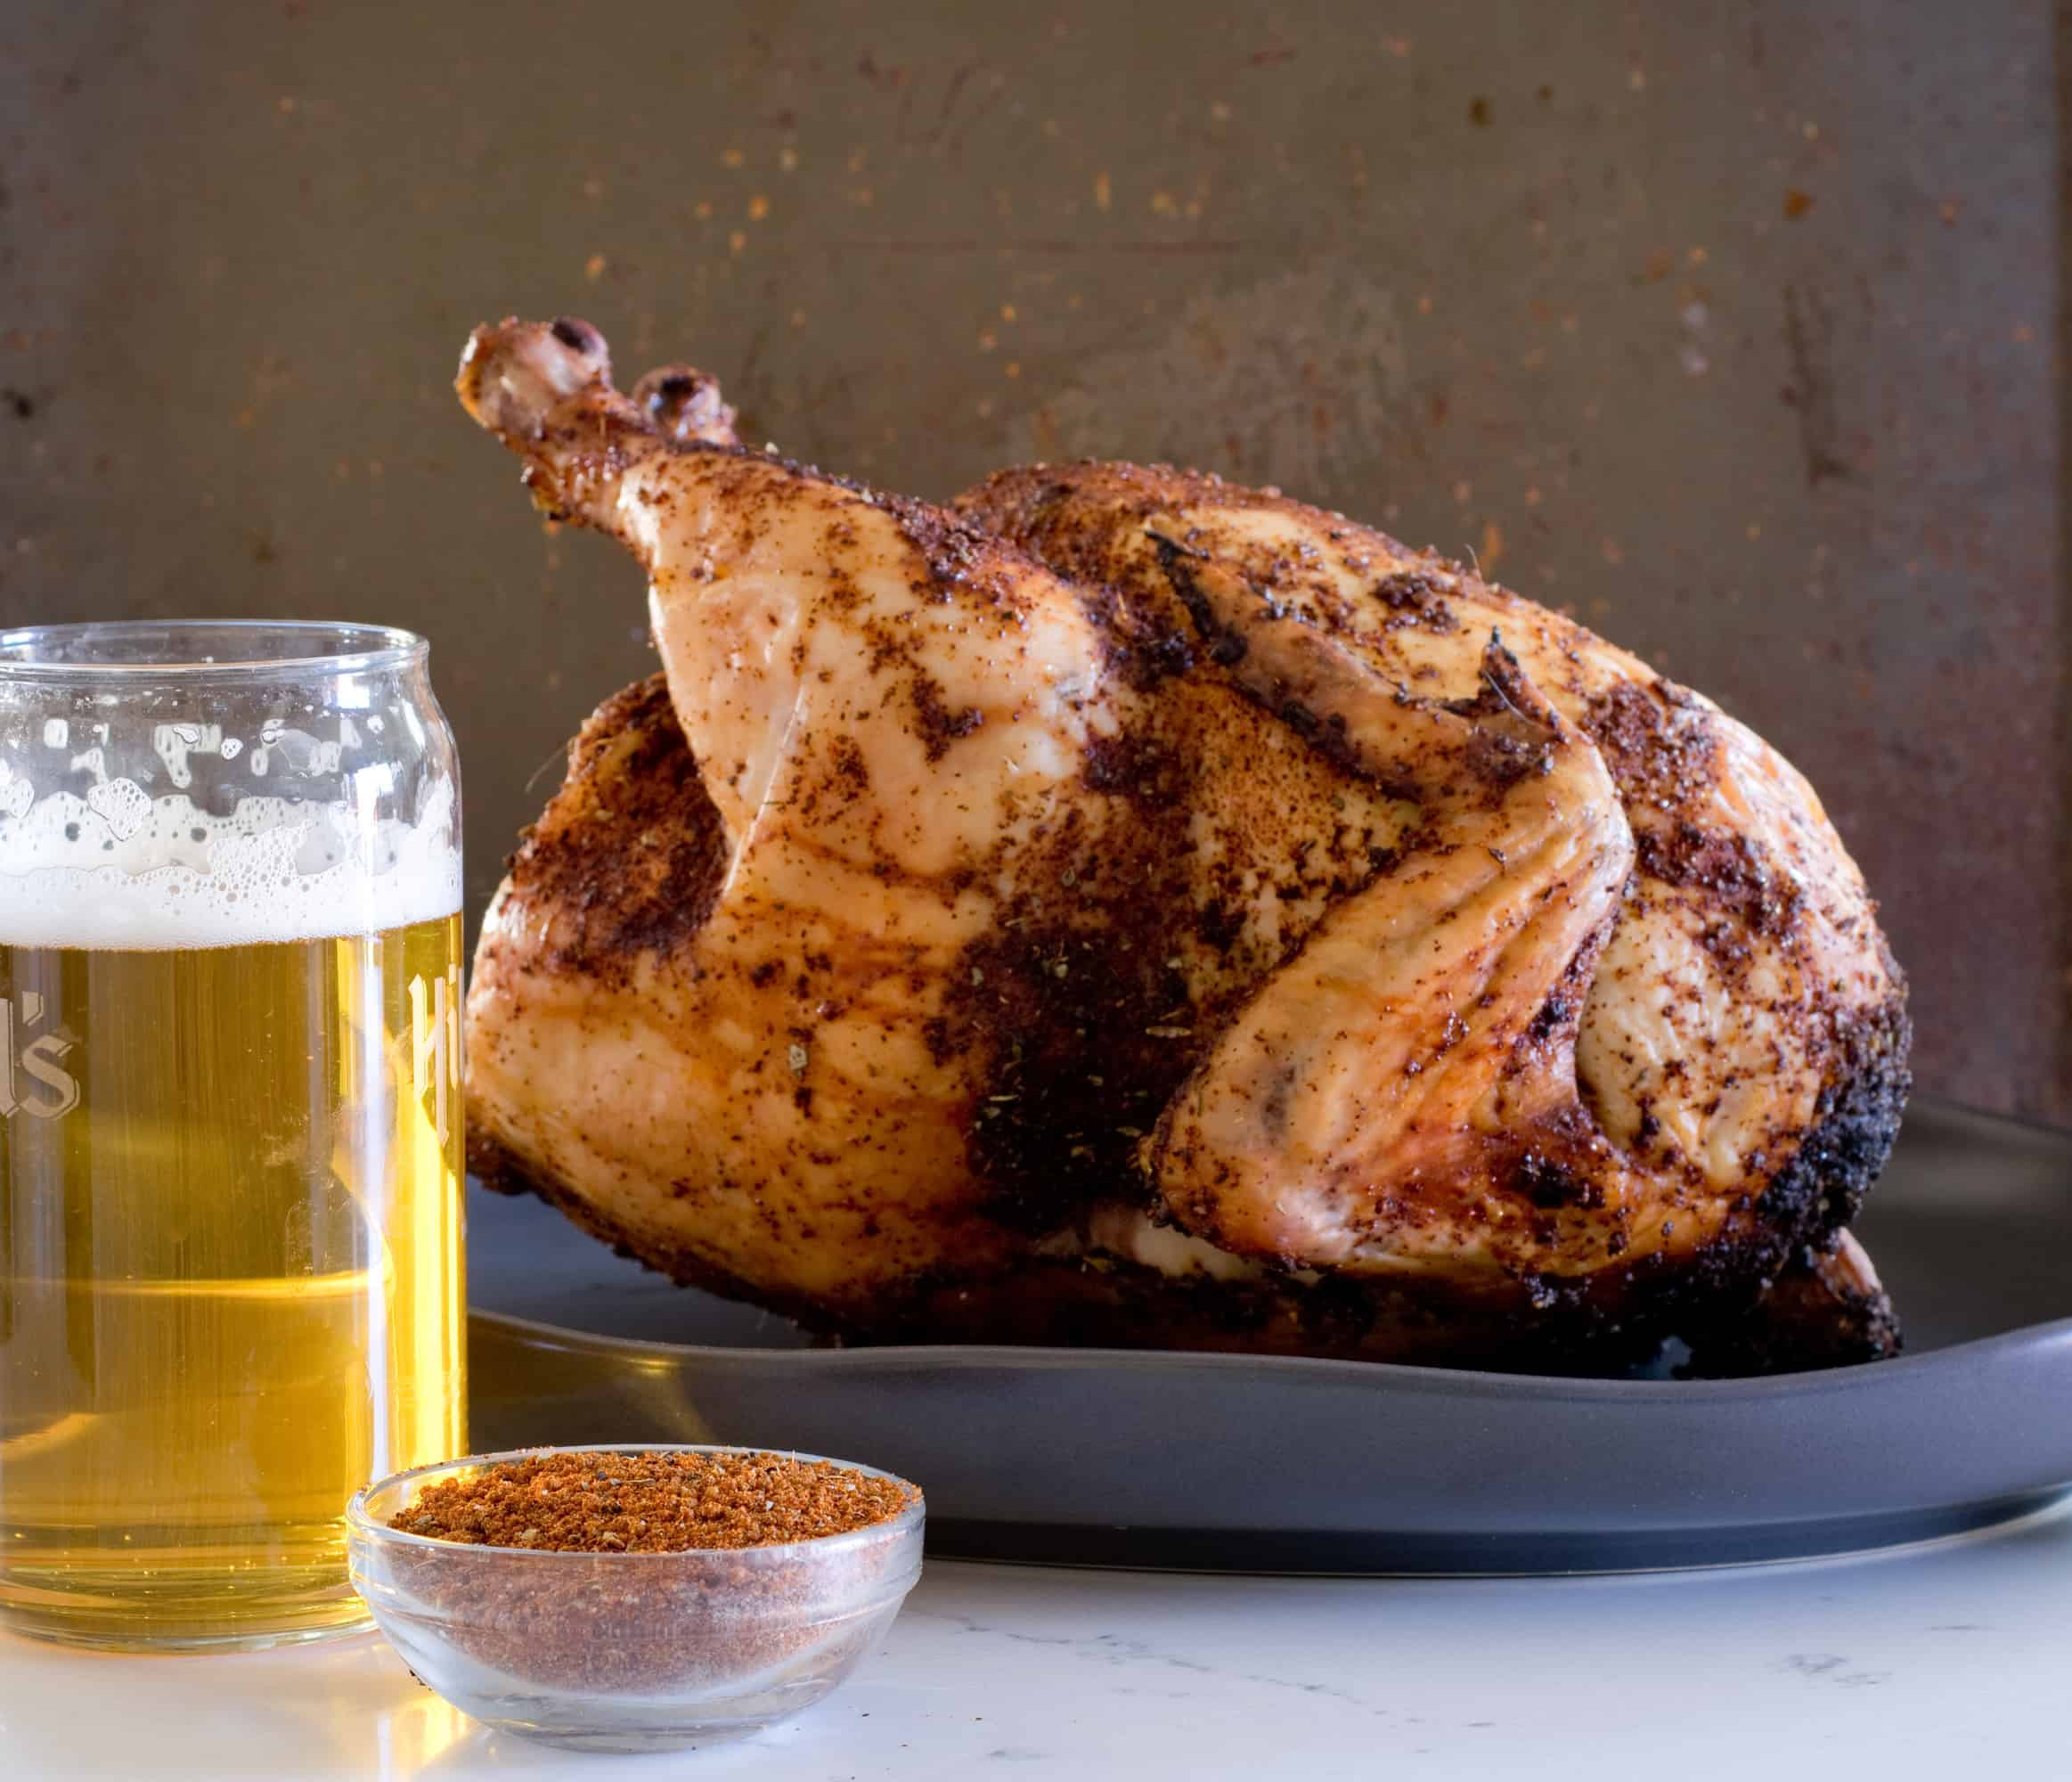 golden brown whole roasted chicken on a dark background next to a glass of beer